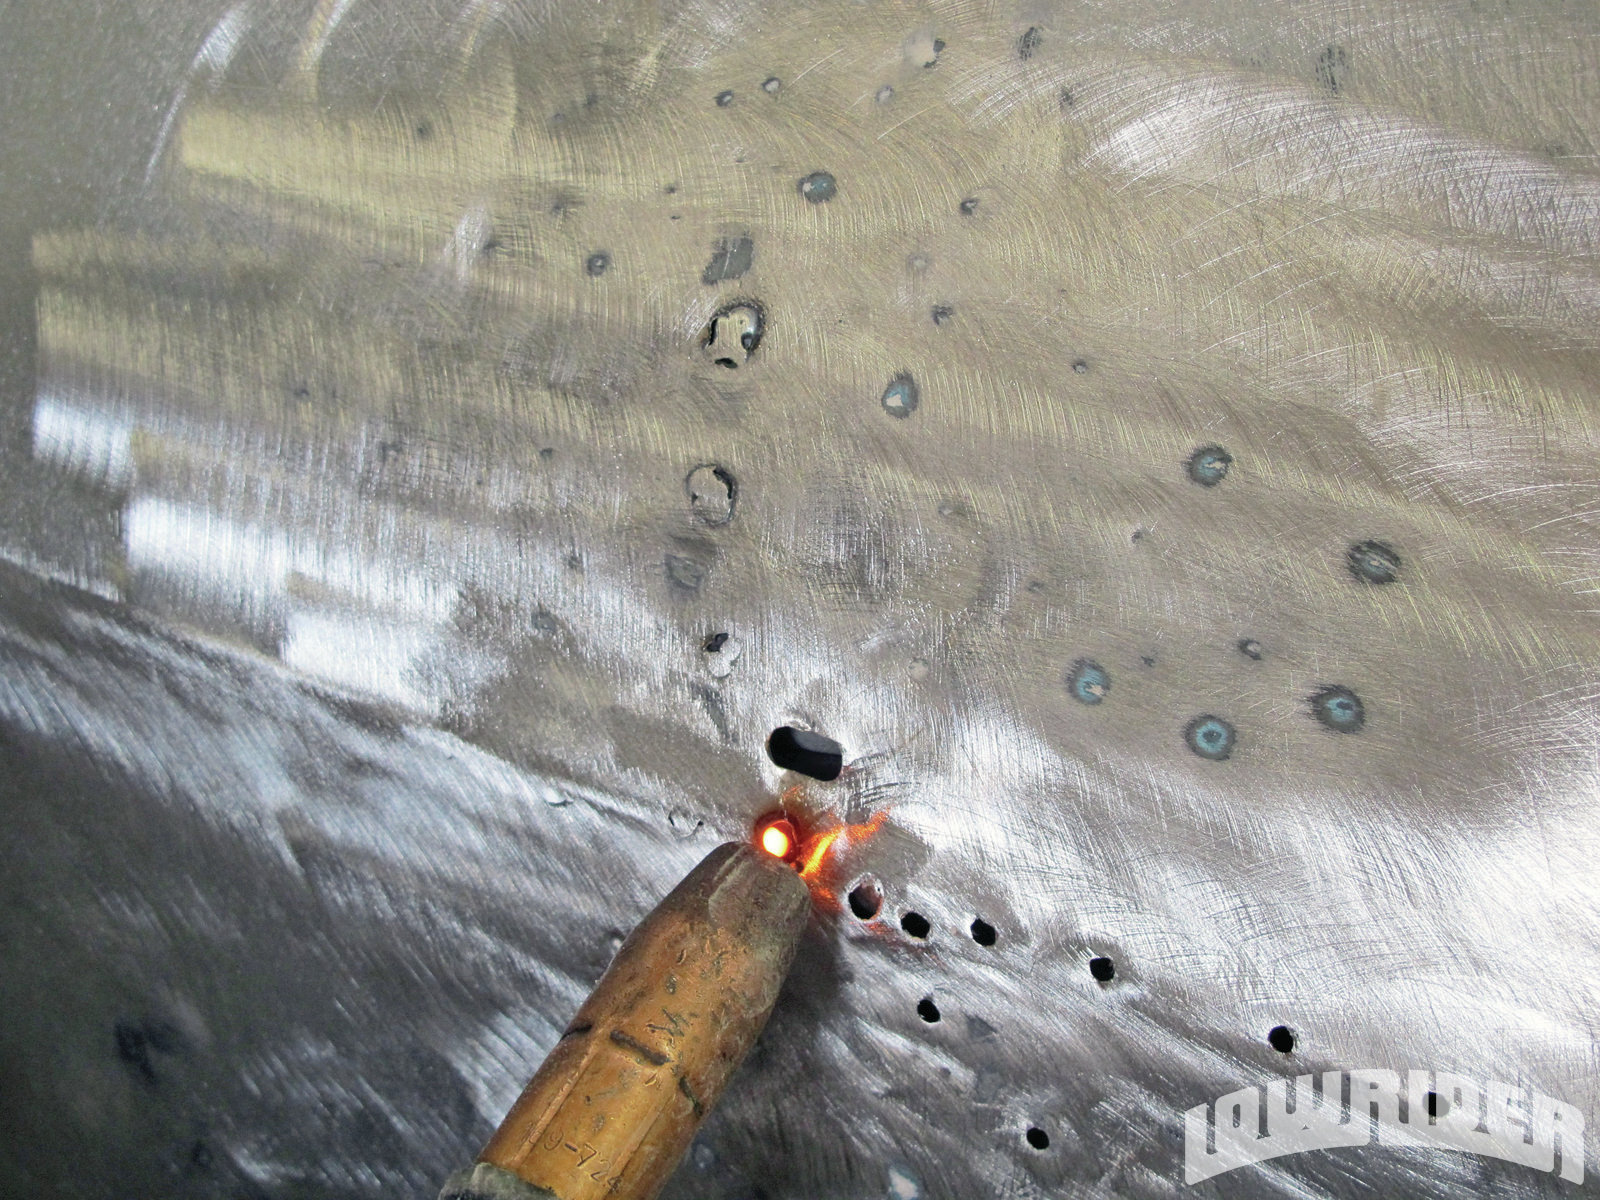 <strong>16</strong>. Using a copper spoon, the unwanted holes had been filled.